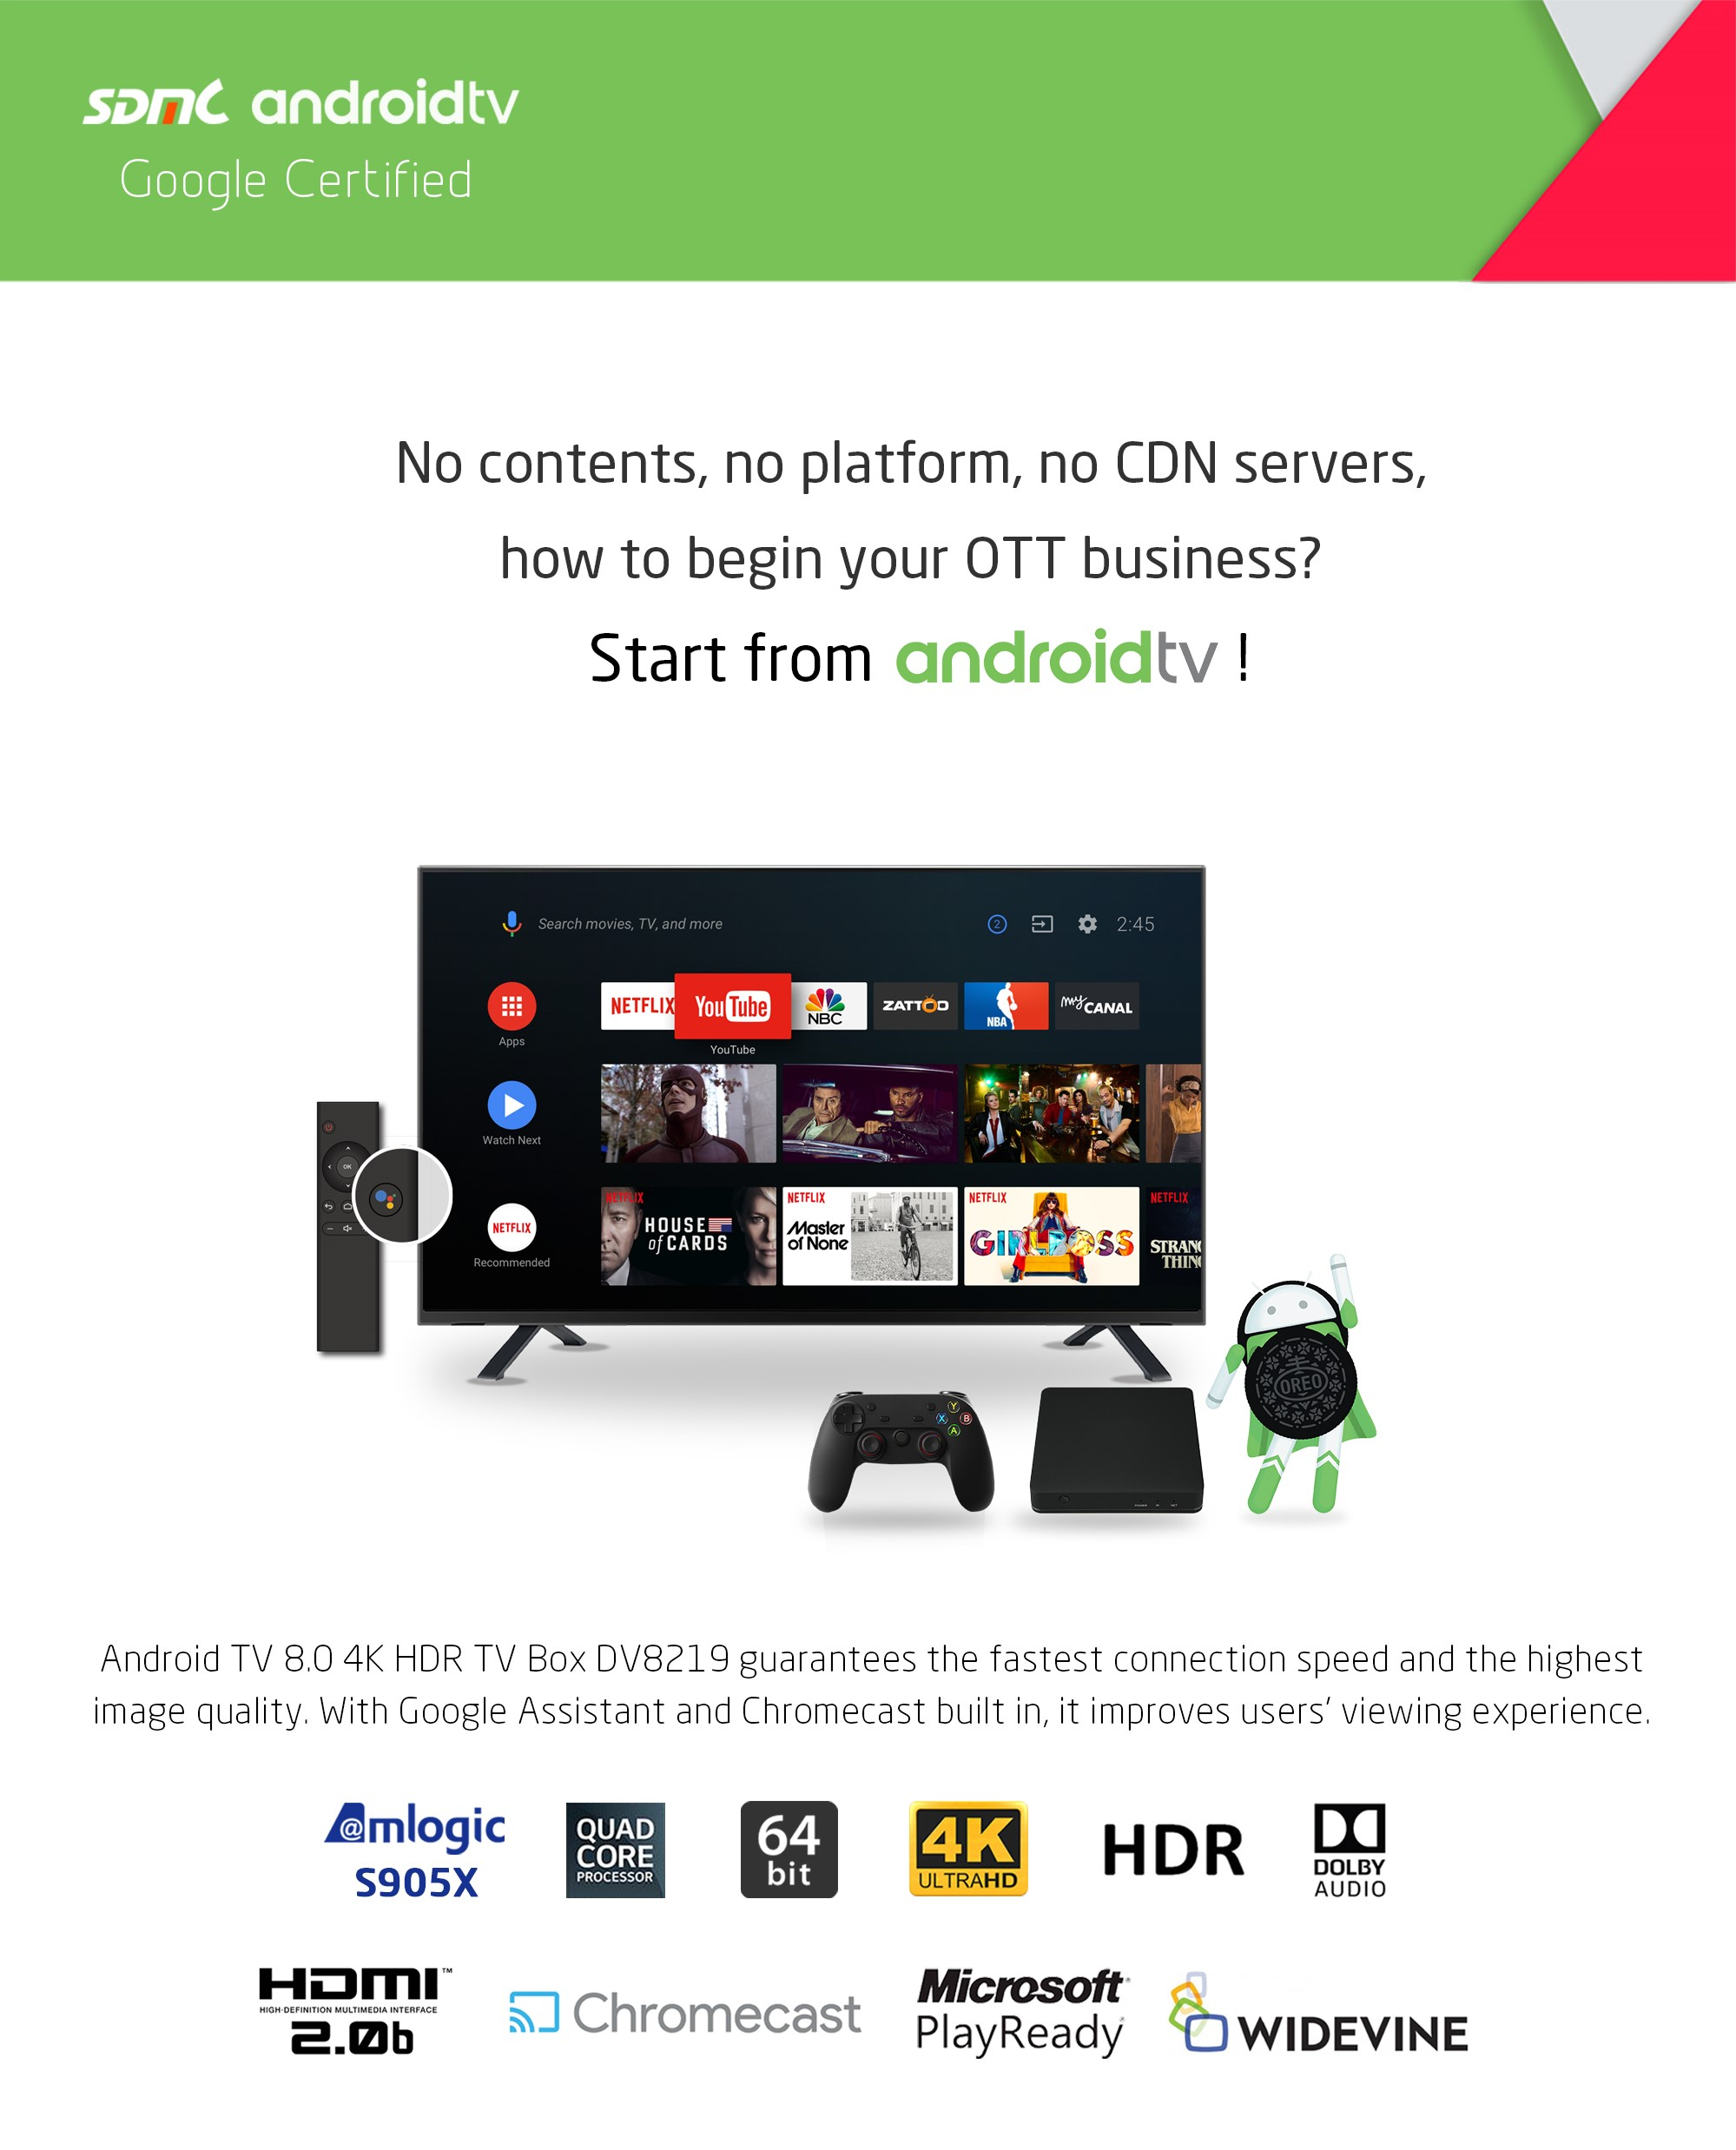 Google Certified 4K OTT TV Box DV8219